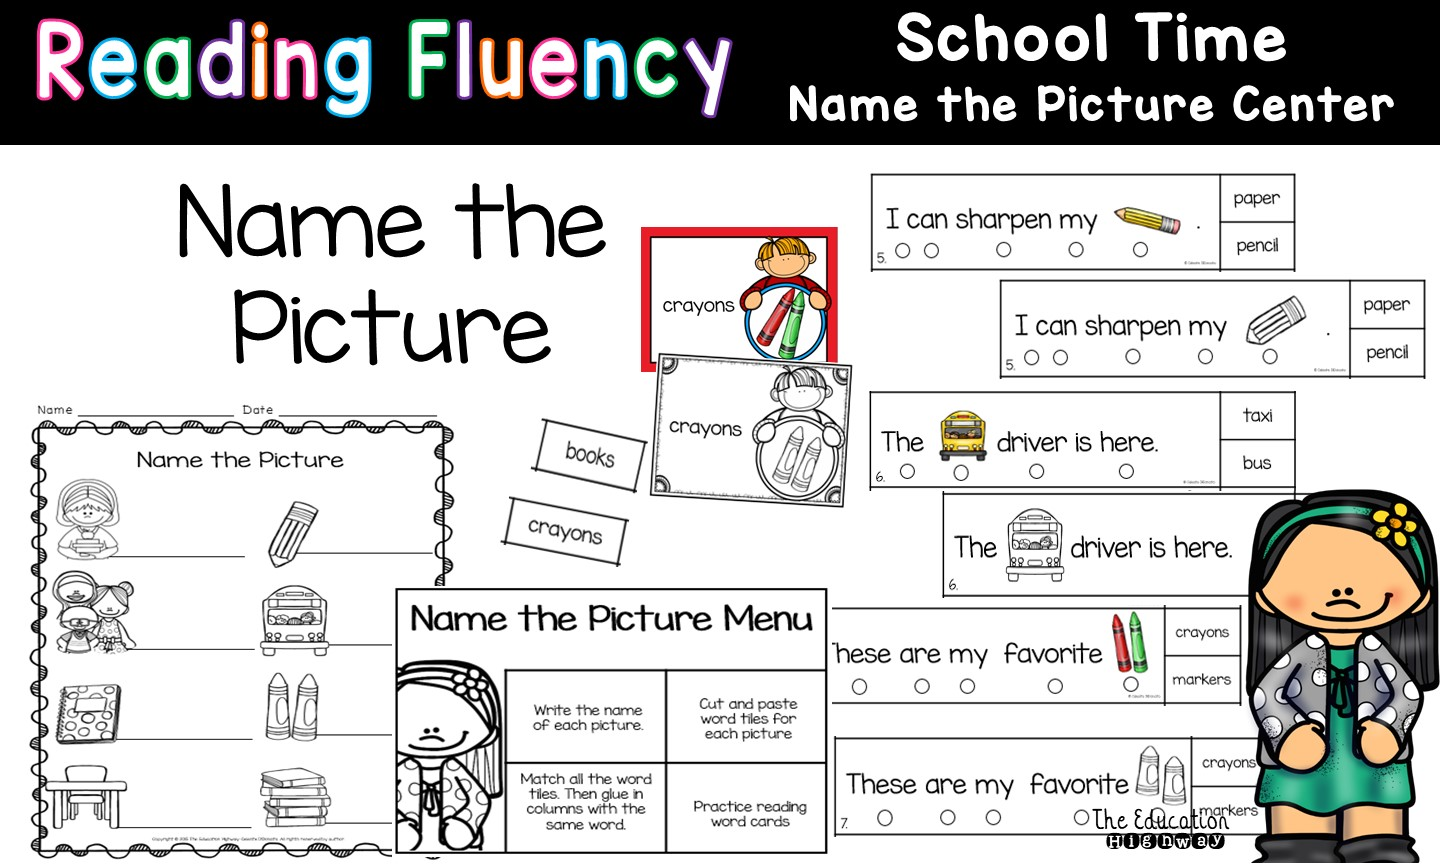 The Education Highway School Time Reading Fluency Passages